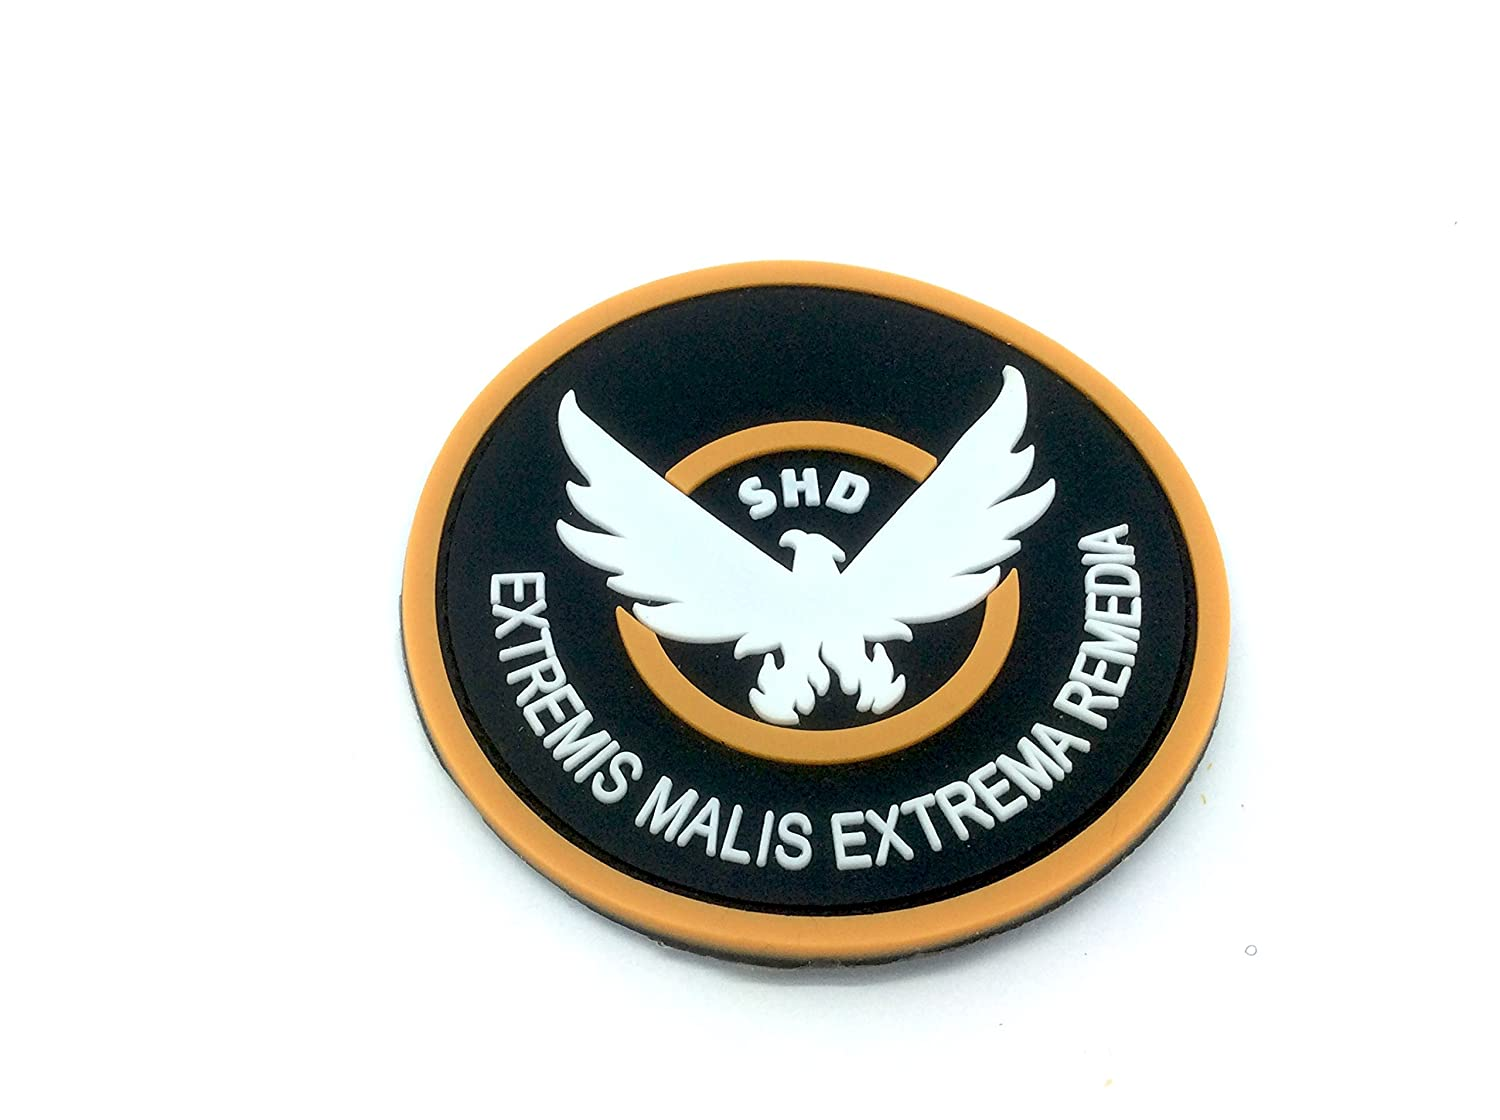 The Division SHD Extremis Malis Extrema Remedia Tondo PVC Airsoft Paintball Squadra Patch Patch Nation